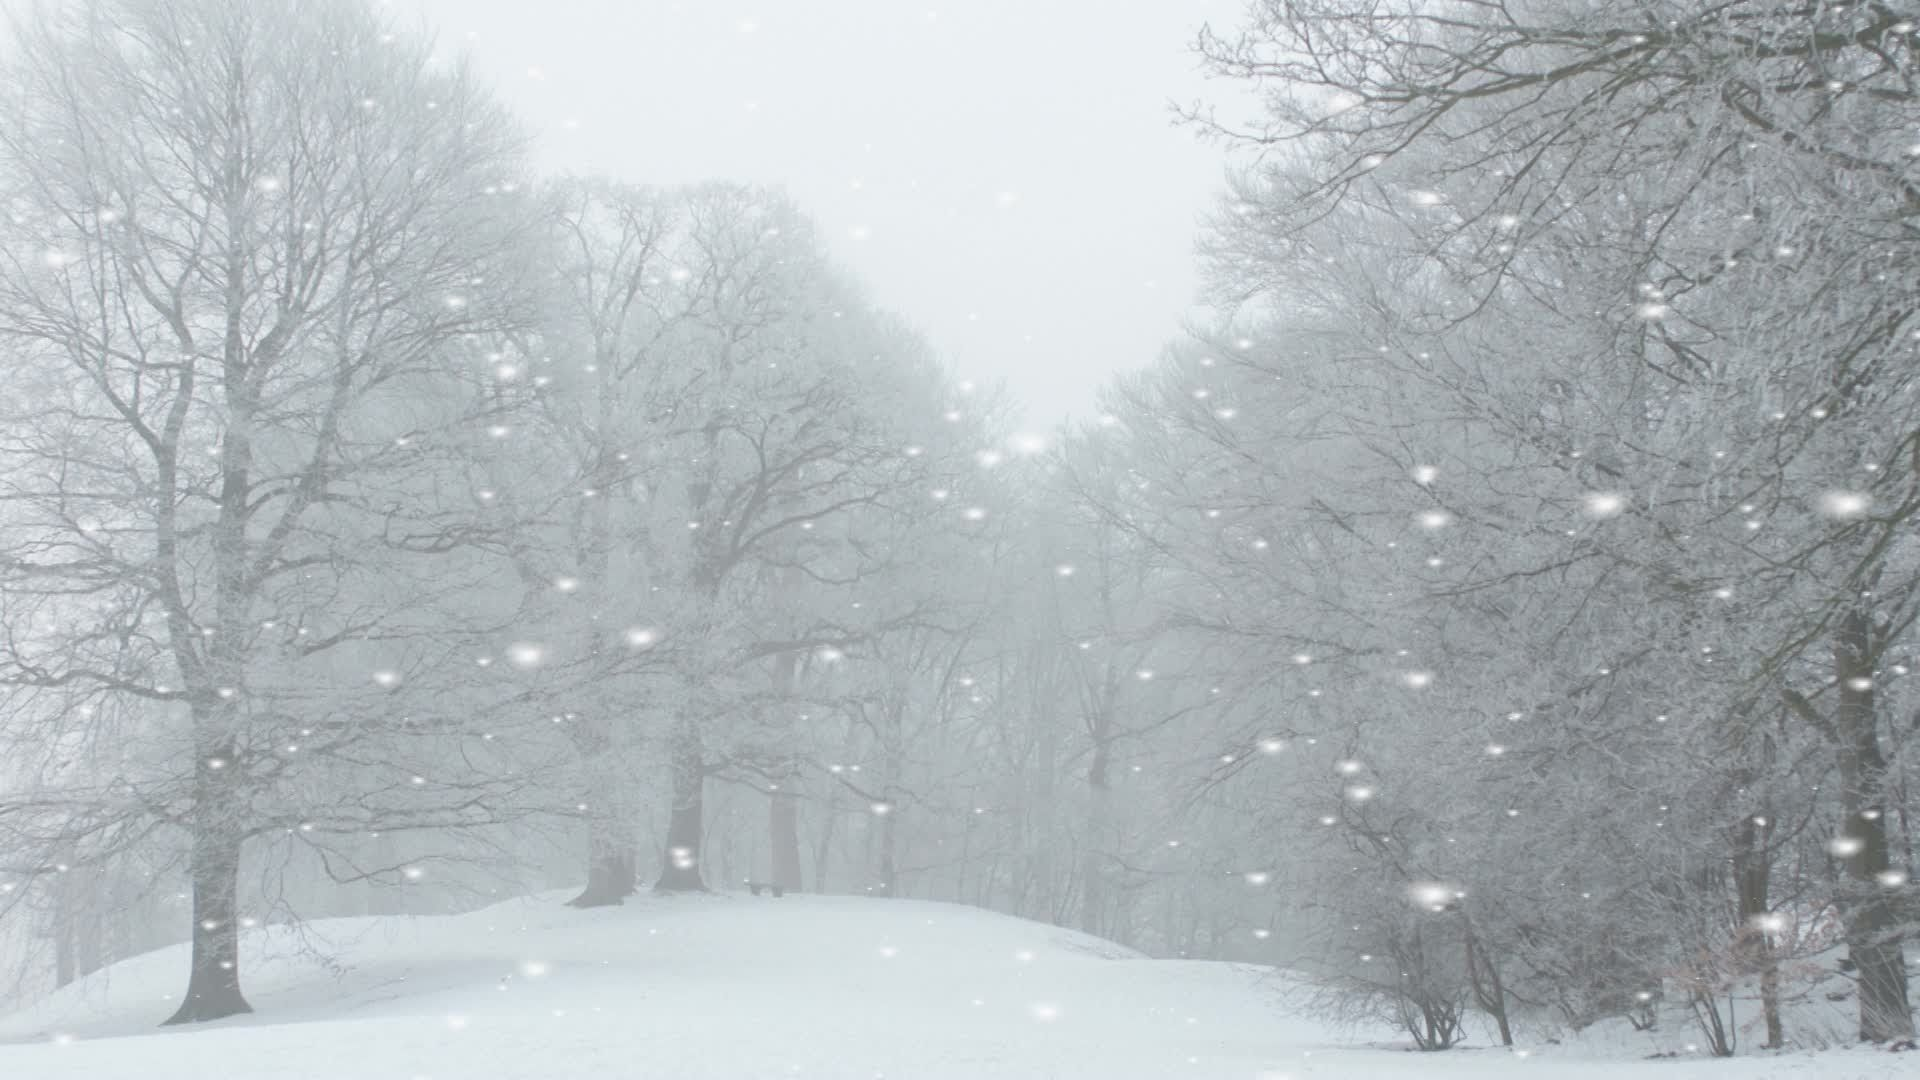 Animated Snow Falling Landscapes Google Search Winter Landscape Winter Pictures Landscape